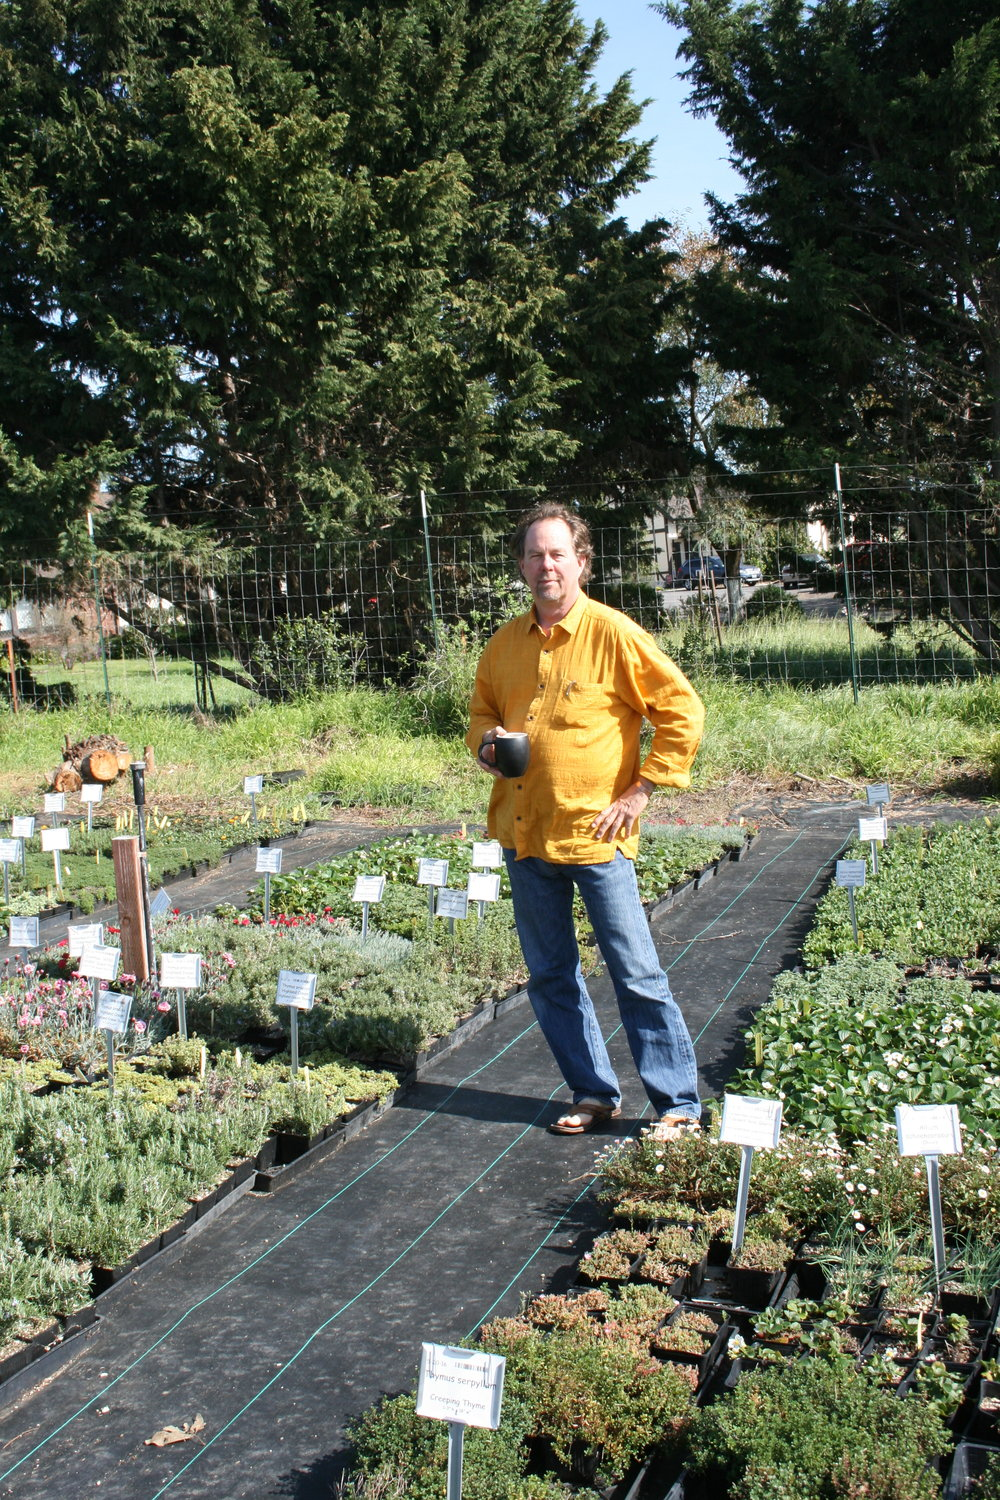 GROWING STRONG     Growing Grounds Farm Program Manager Craig Wilson tends to greenery at the nonprofit's wholesale nursery located in San Luis Obispo off Orcutt Road.    PHOTO BY HAYLEY THOMAS CAIN